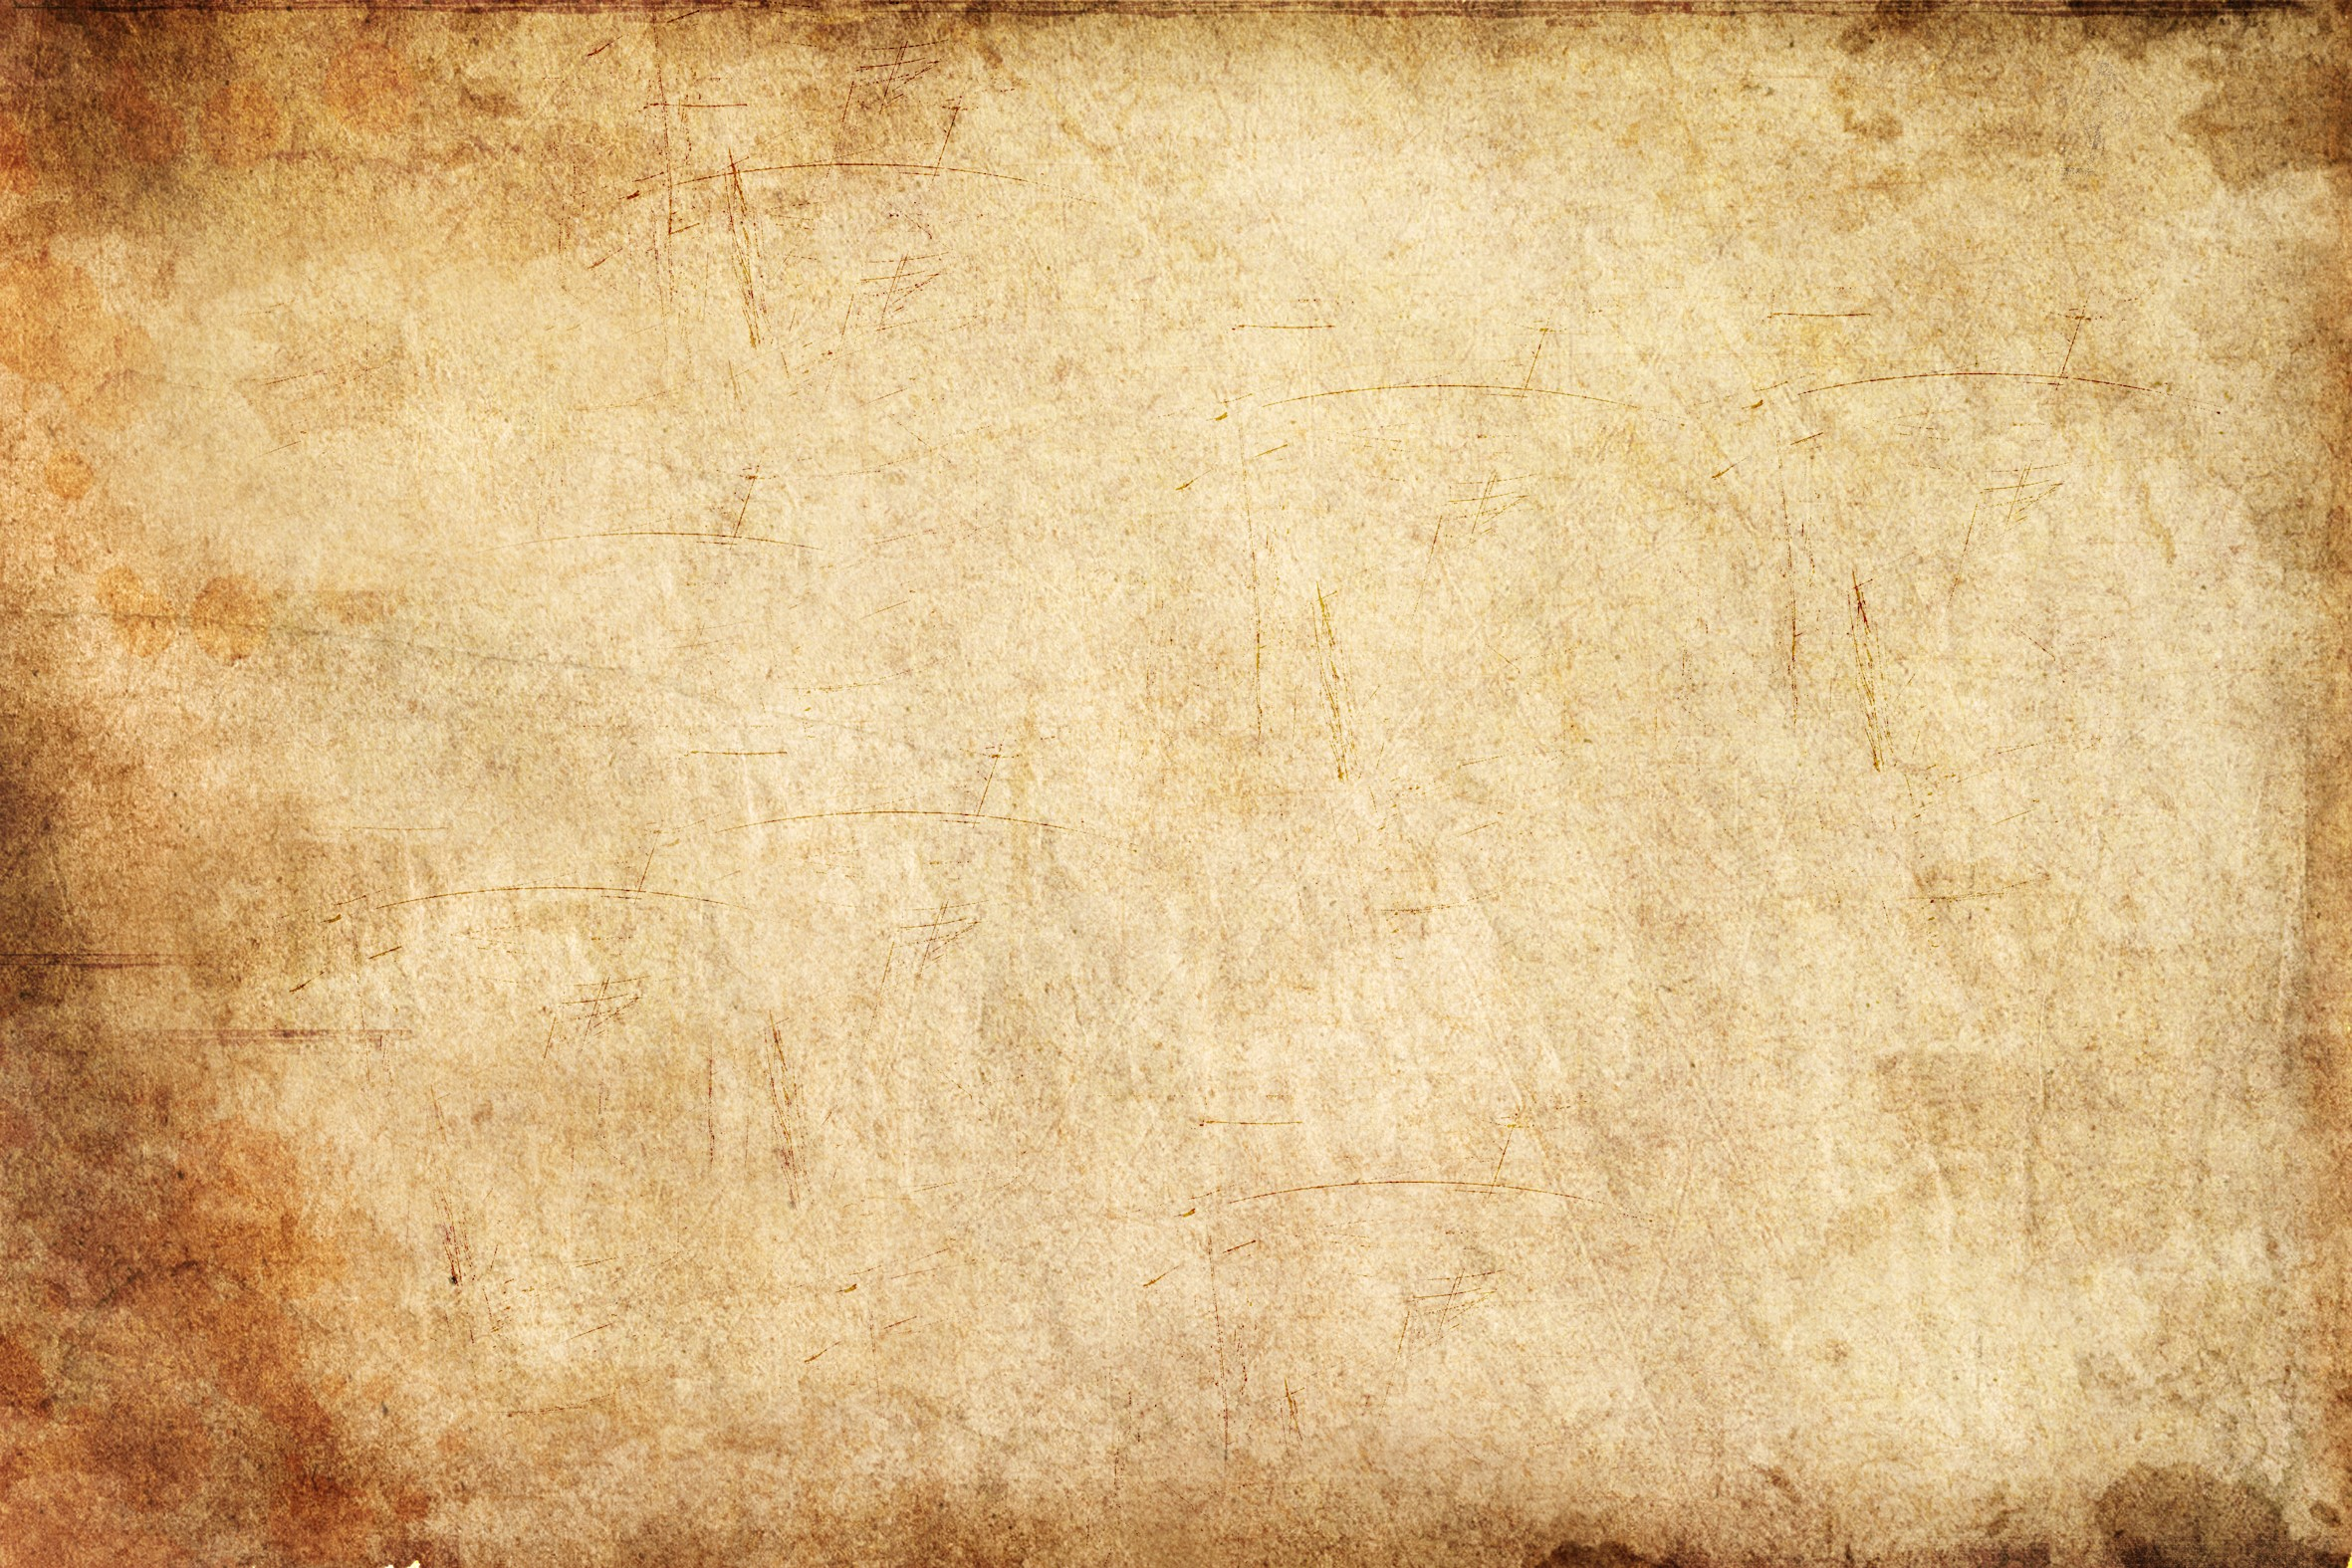 Antique Backgrounds Page 1